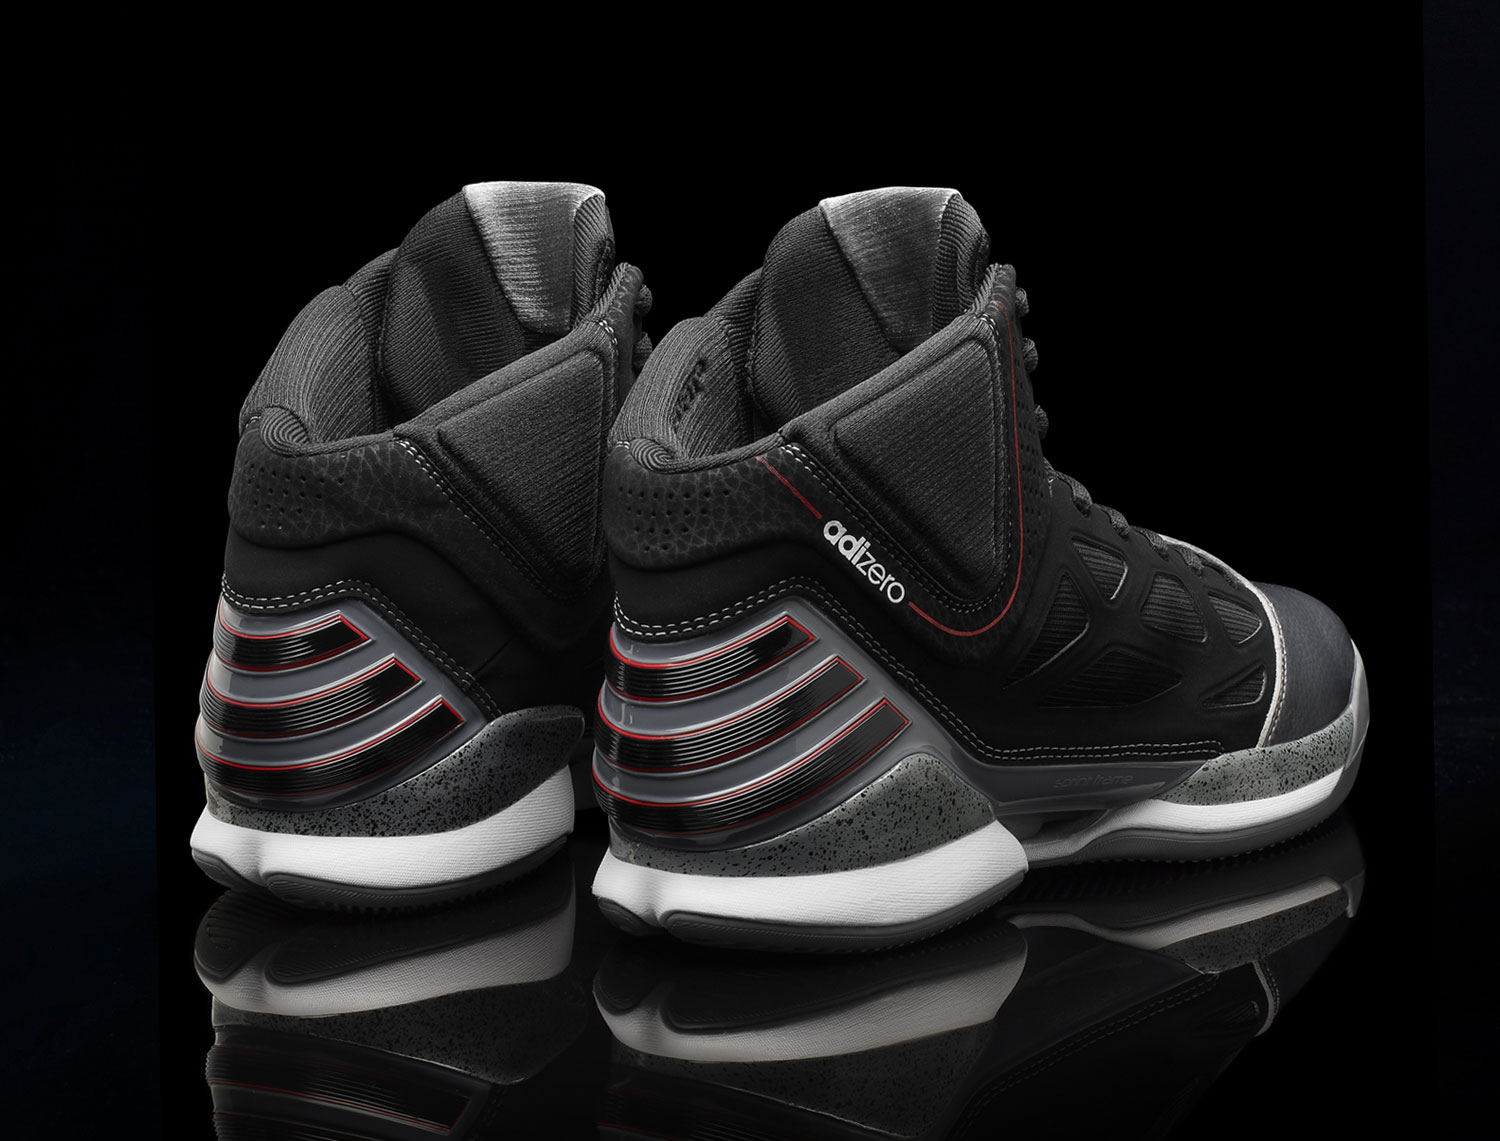 Adizero D Rose 2.5 nd1CaTiO